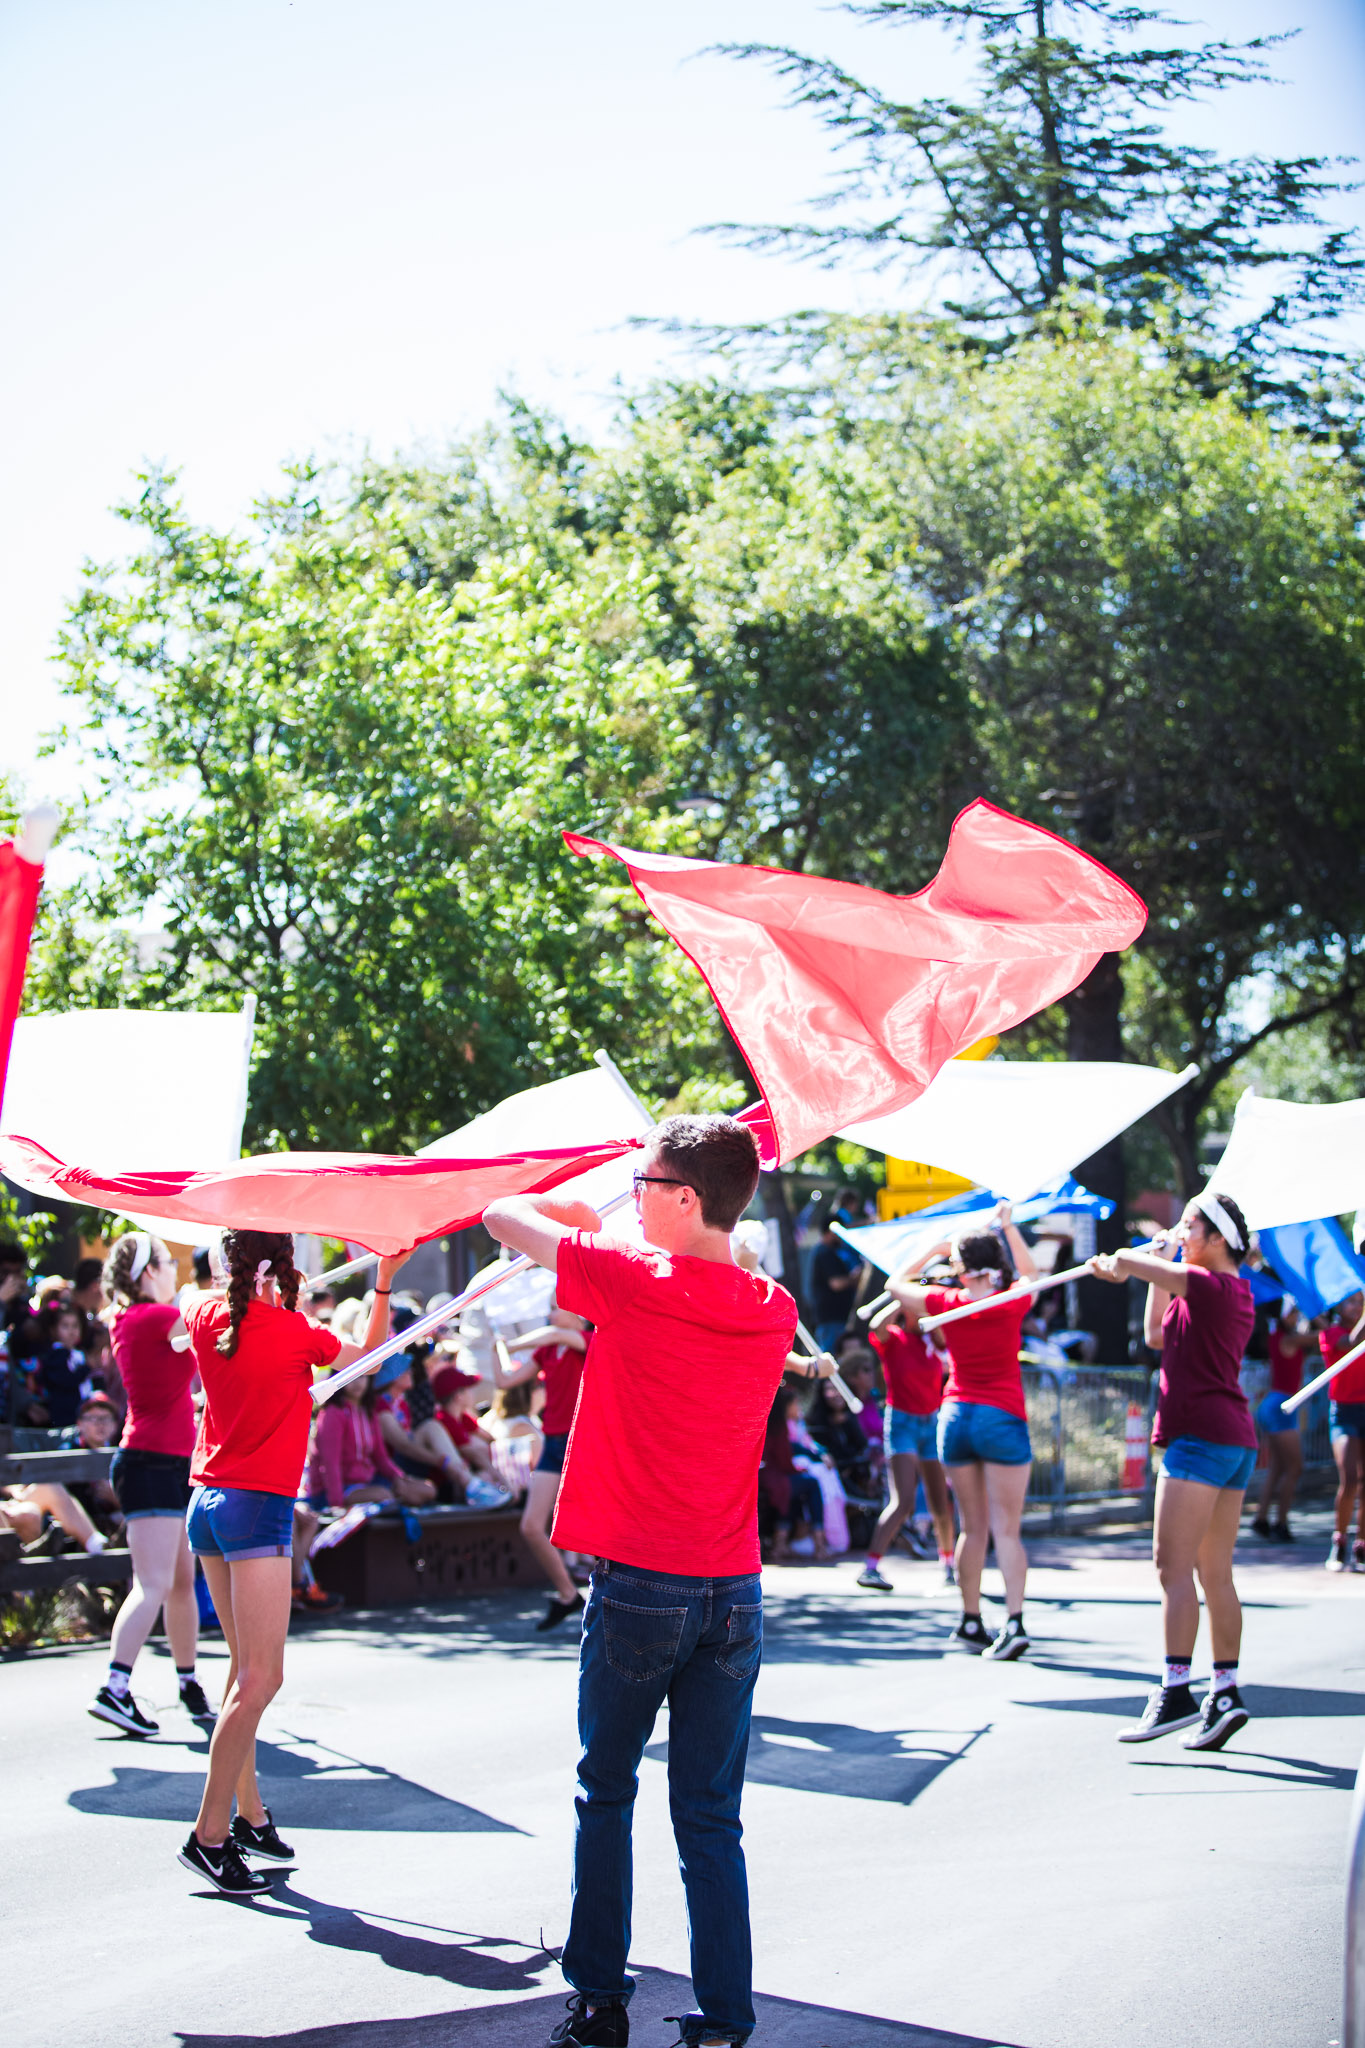 Archer_Inspired_Photography_Morgan_Hill_California_4th_of_july_parade-55.jpg